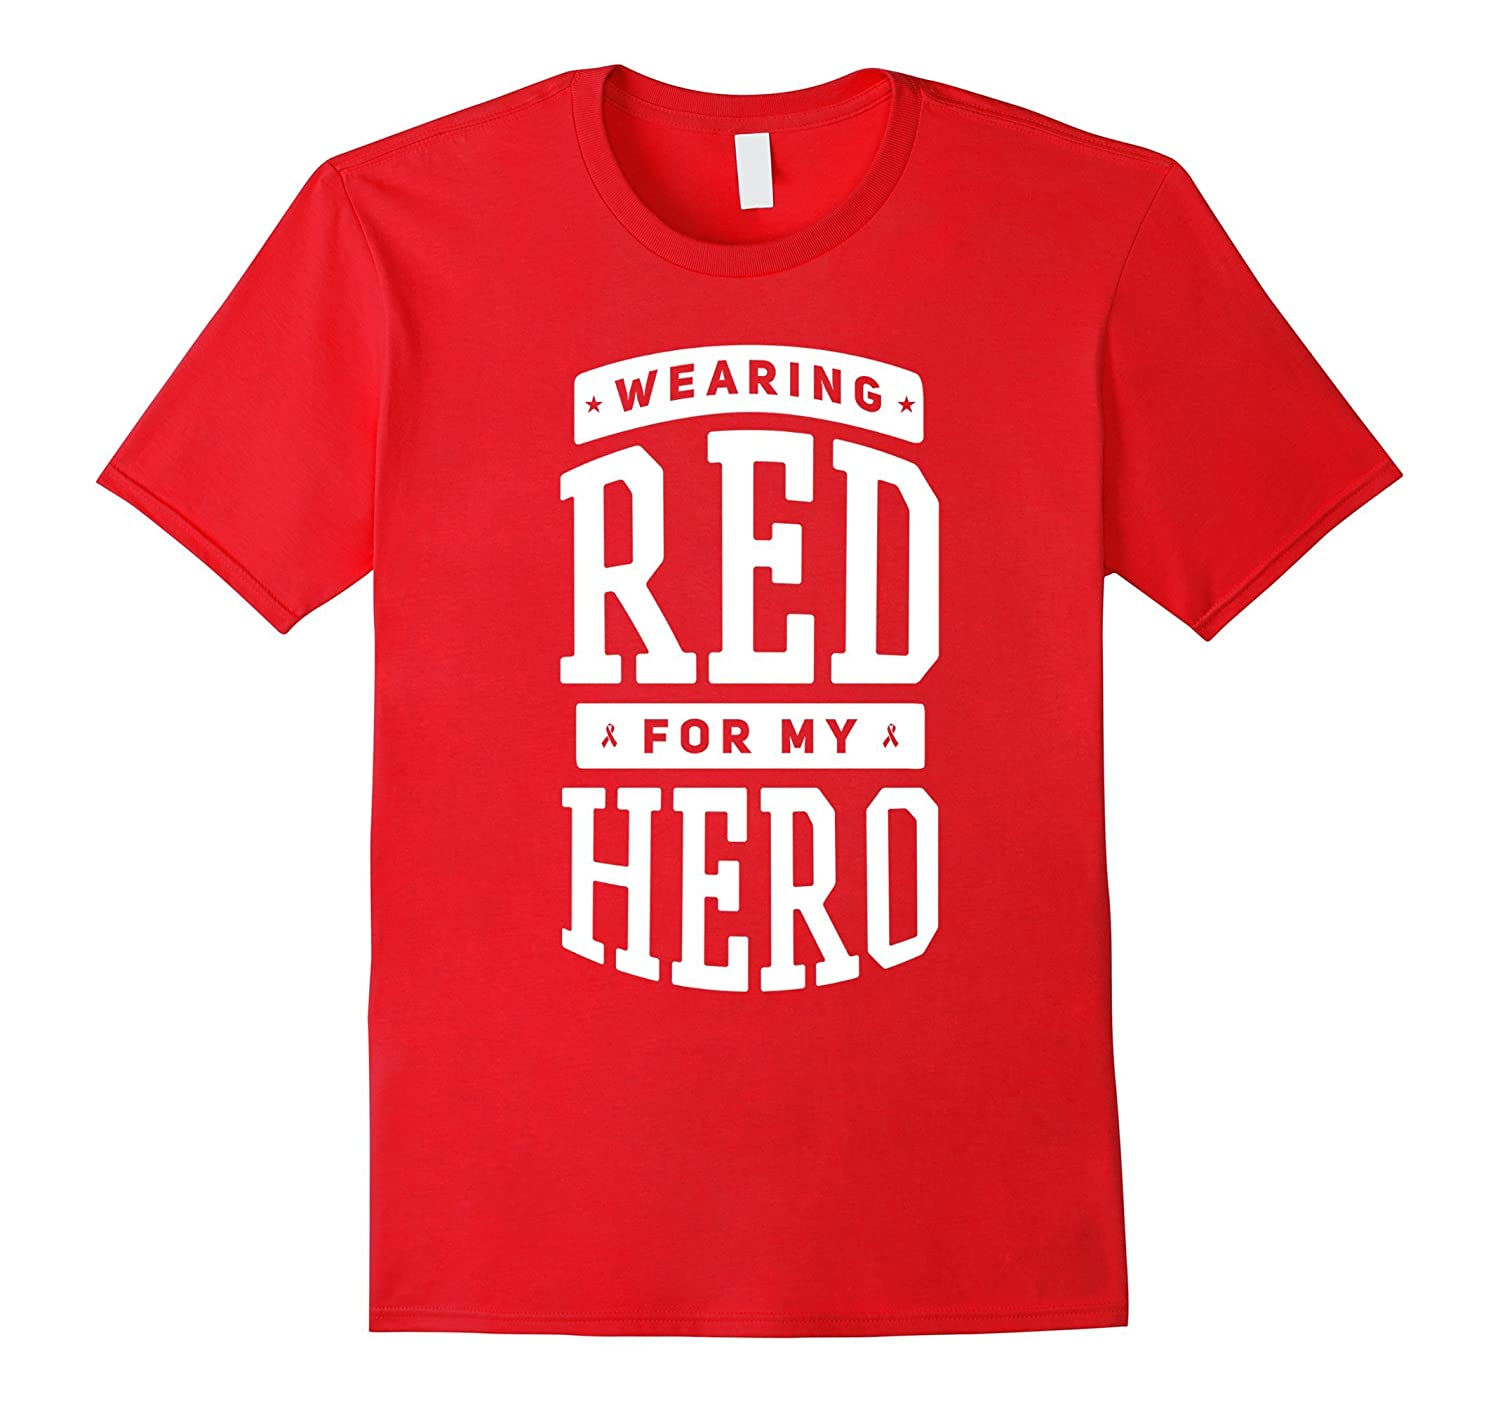 Wearing Red for My Hero-Vaci